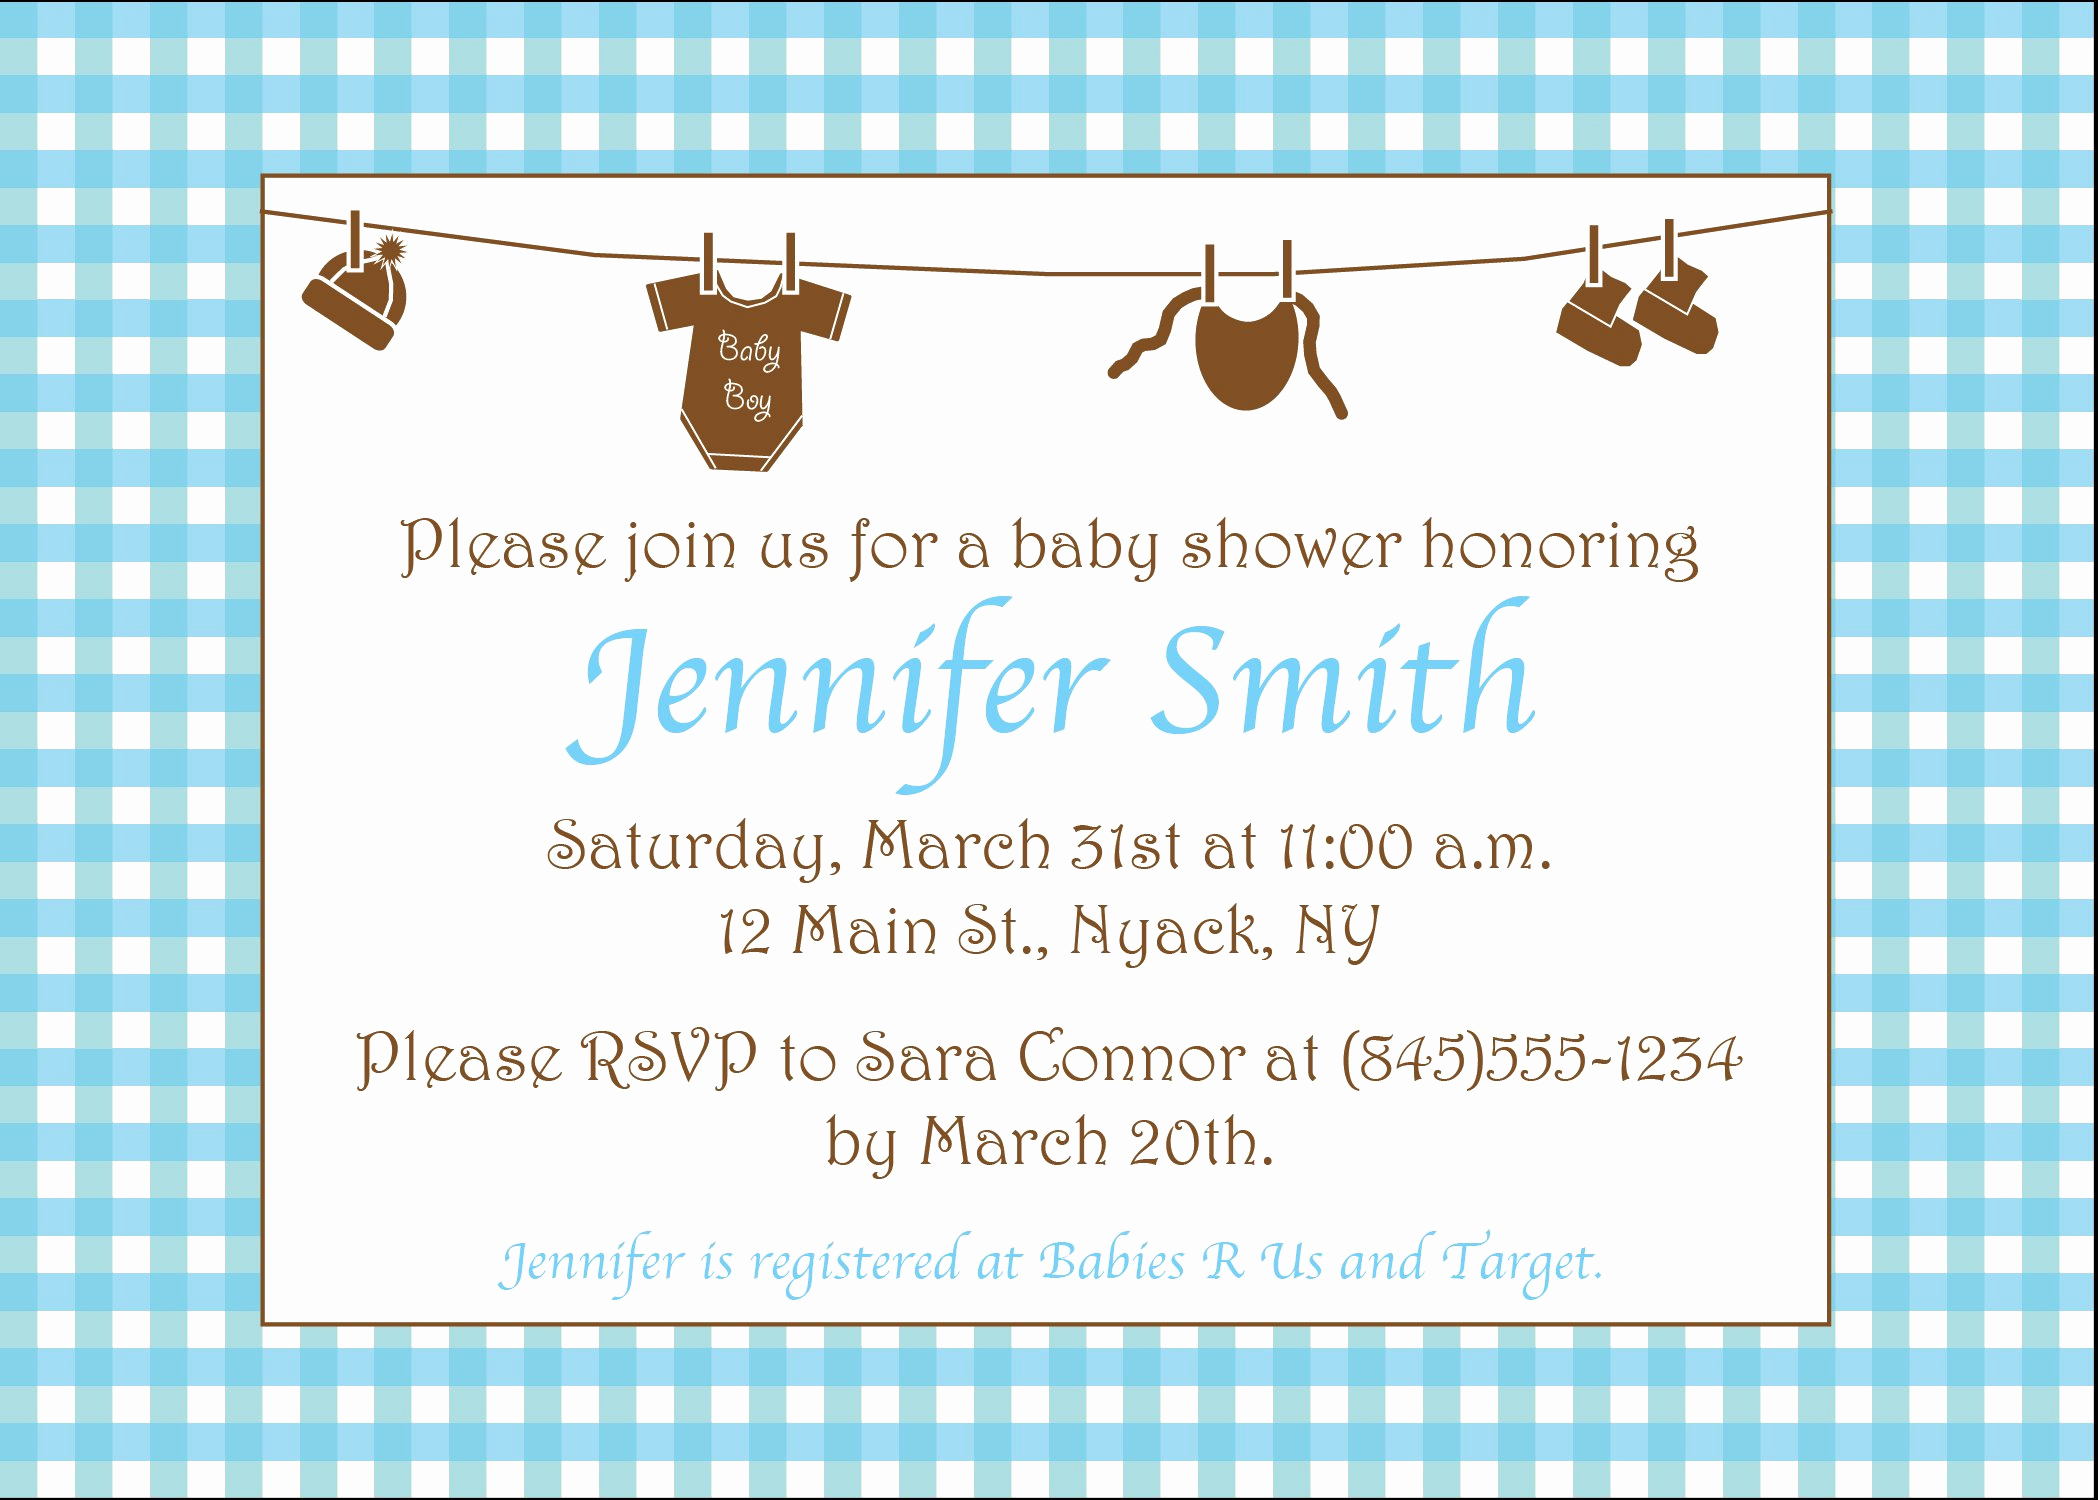 Sample Baby Shower Invitations Inspirational Birthday Invitation Mickey Mouse Birthday Invitations